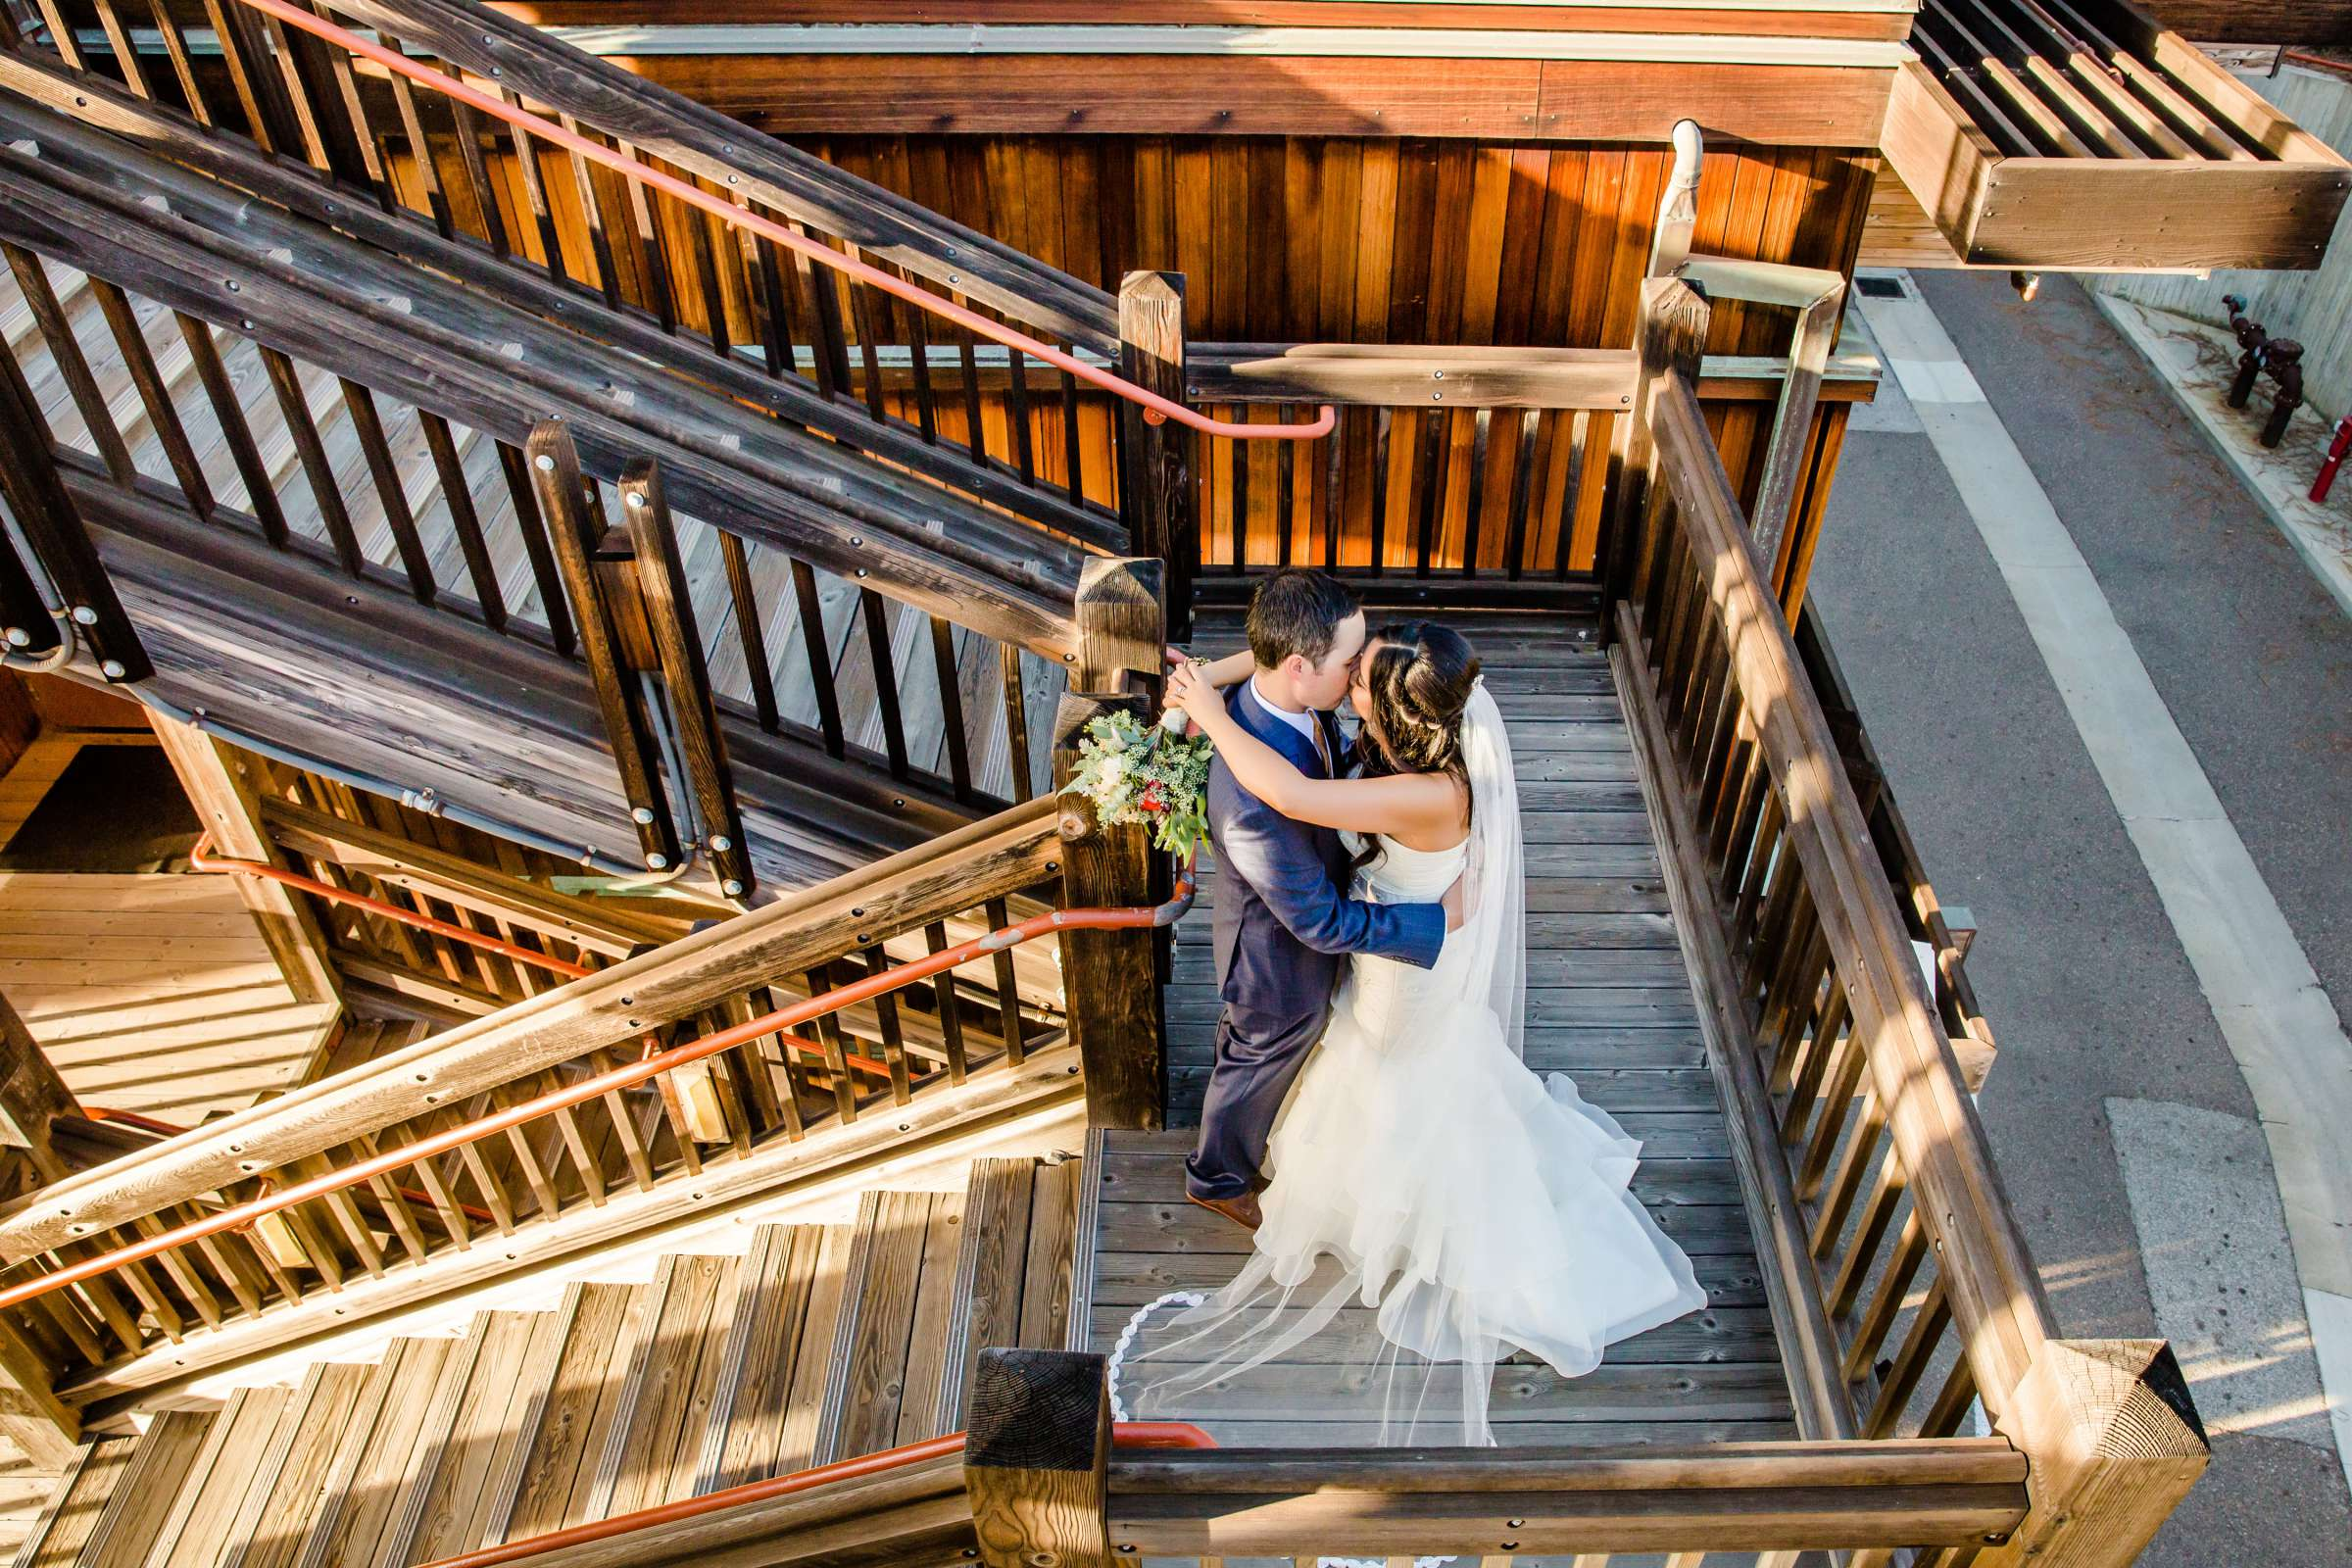 Martin Johnson House Wedding, Tiffany and Corbin Wedding Photo #17 by True Photography